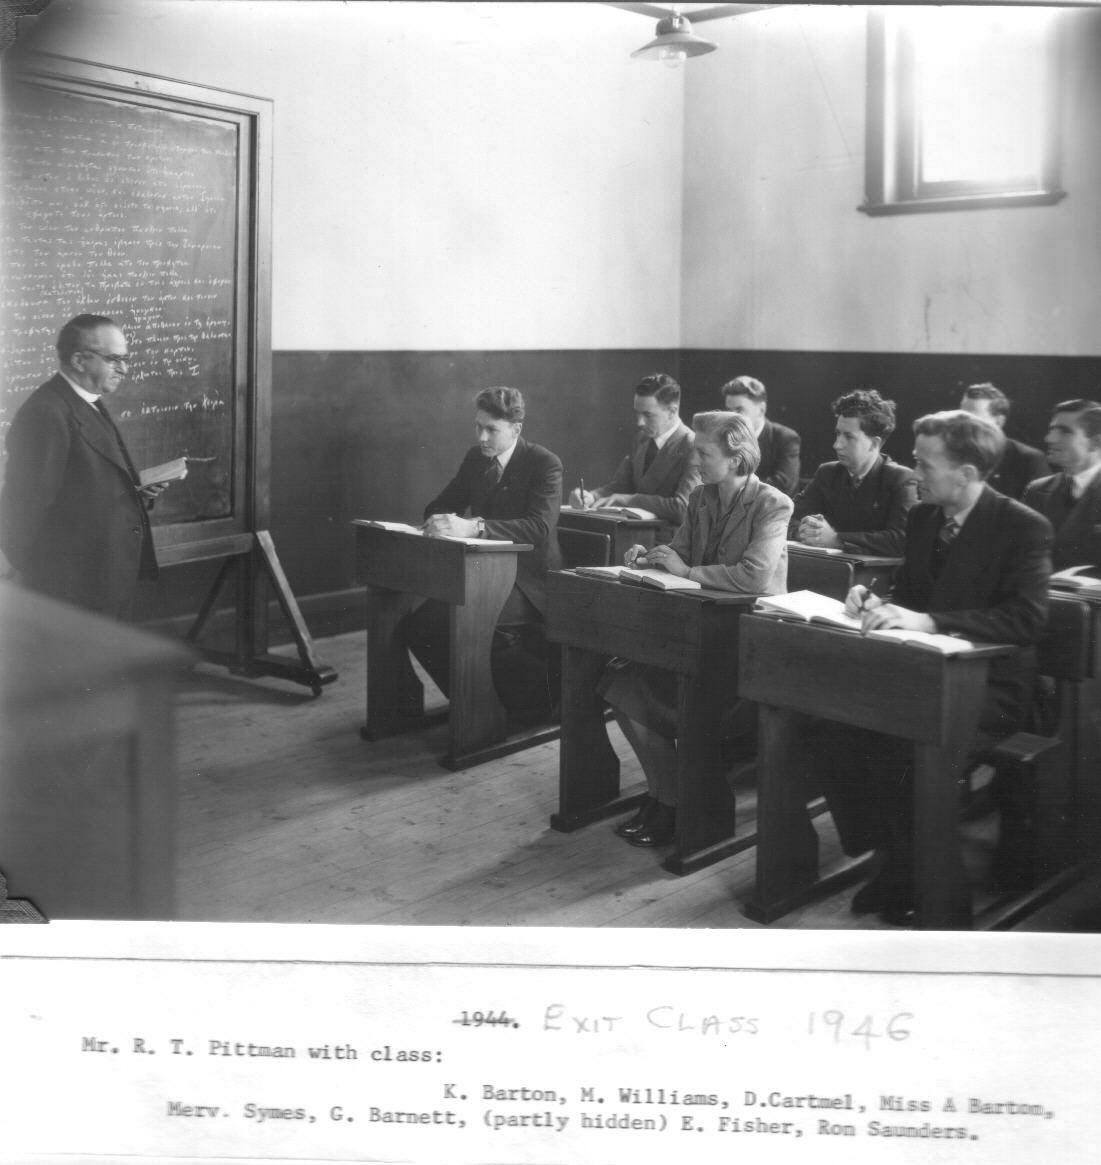 R. T. Pittman lecturing, 1946